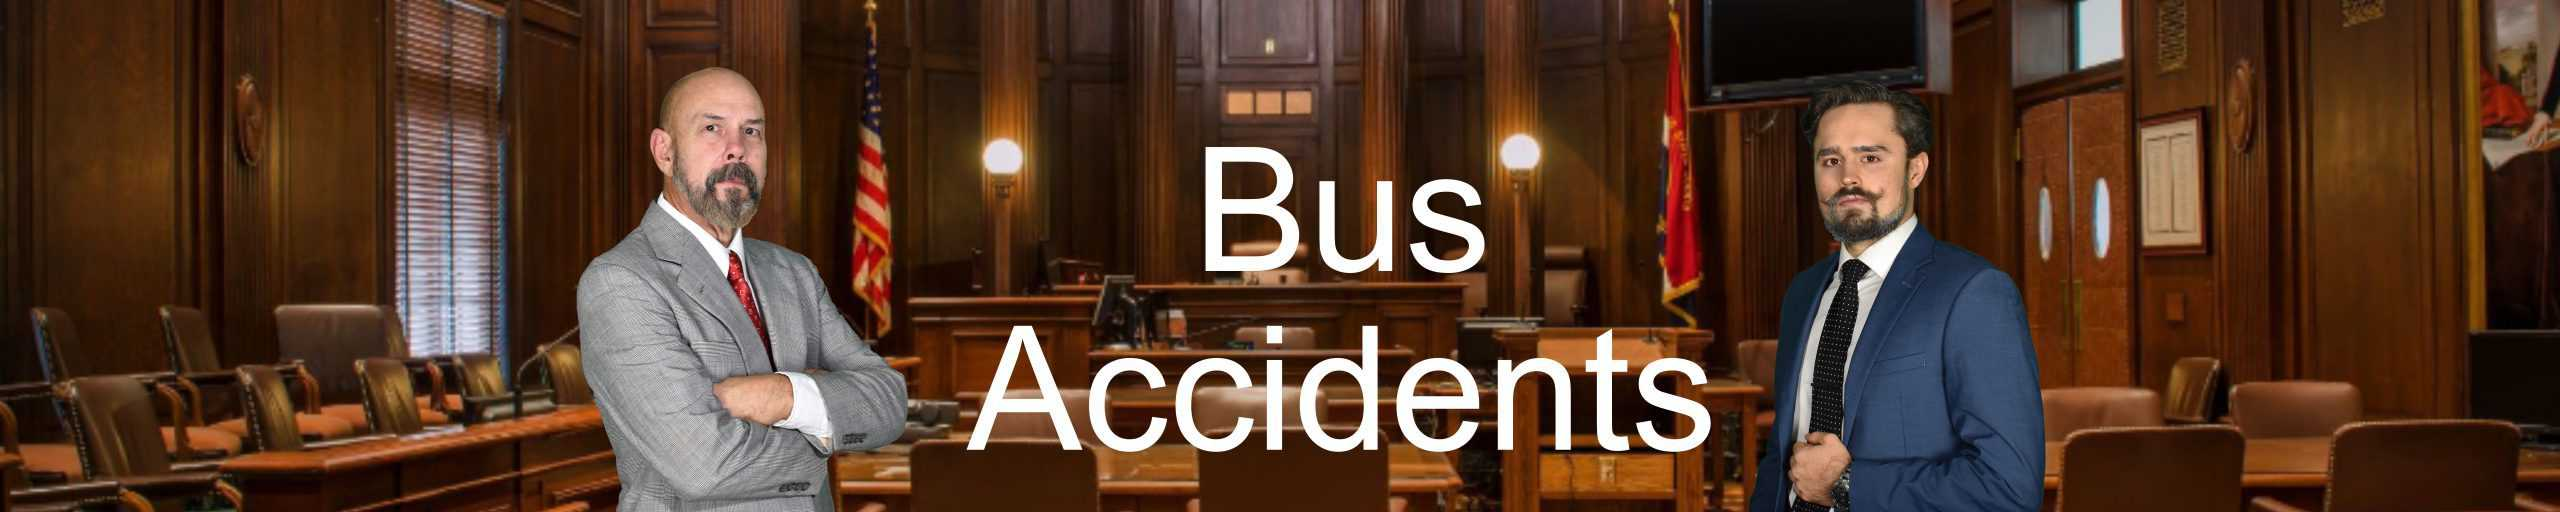 Bus-Accidents-Personal-Injury-Attorney-Lawyer-Hurt-Broken-Rear-End-Money-Settlement-Hospital-ER-Damage-Insurance-Company